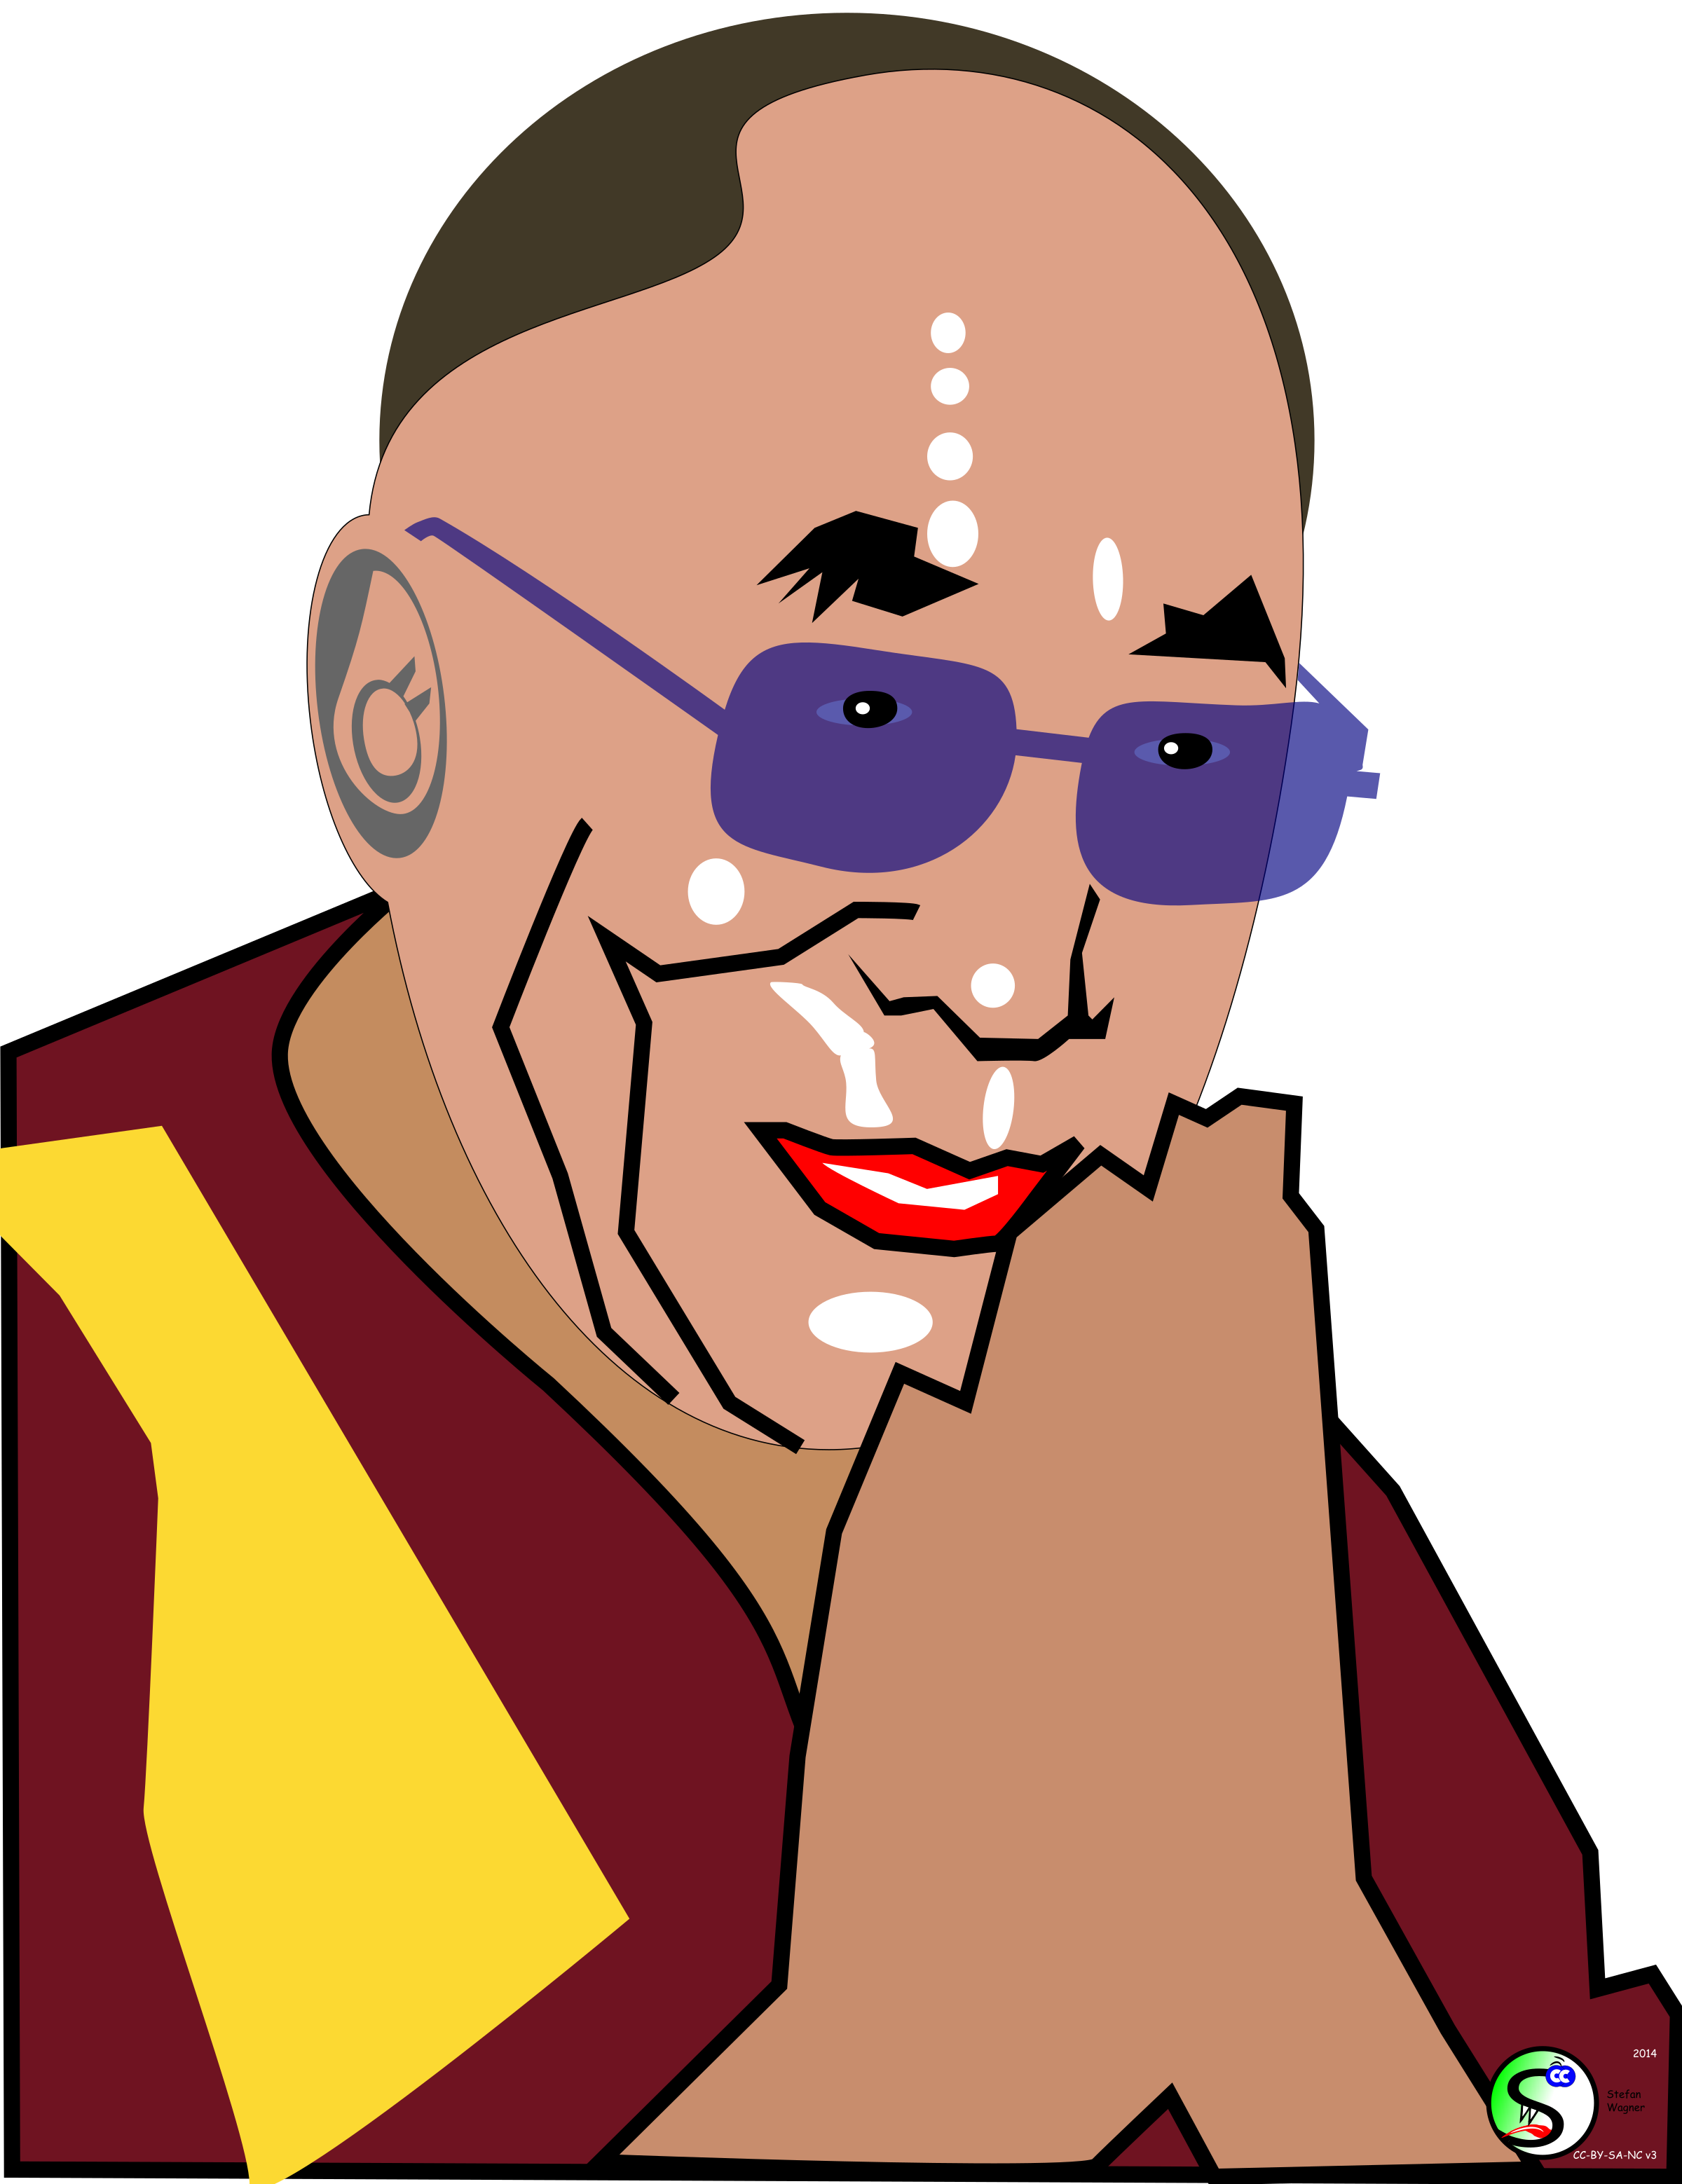 Dalai Lama by user unknown